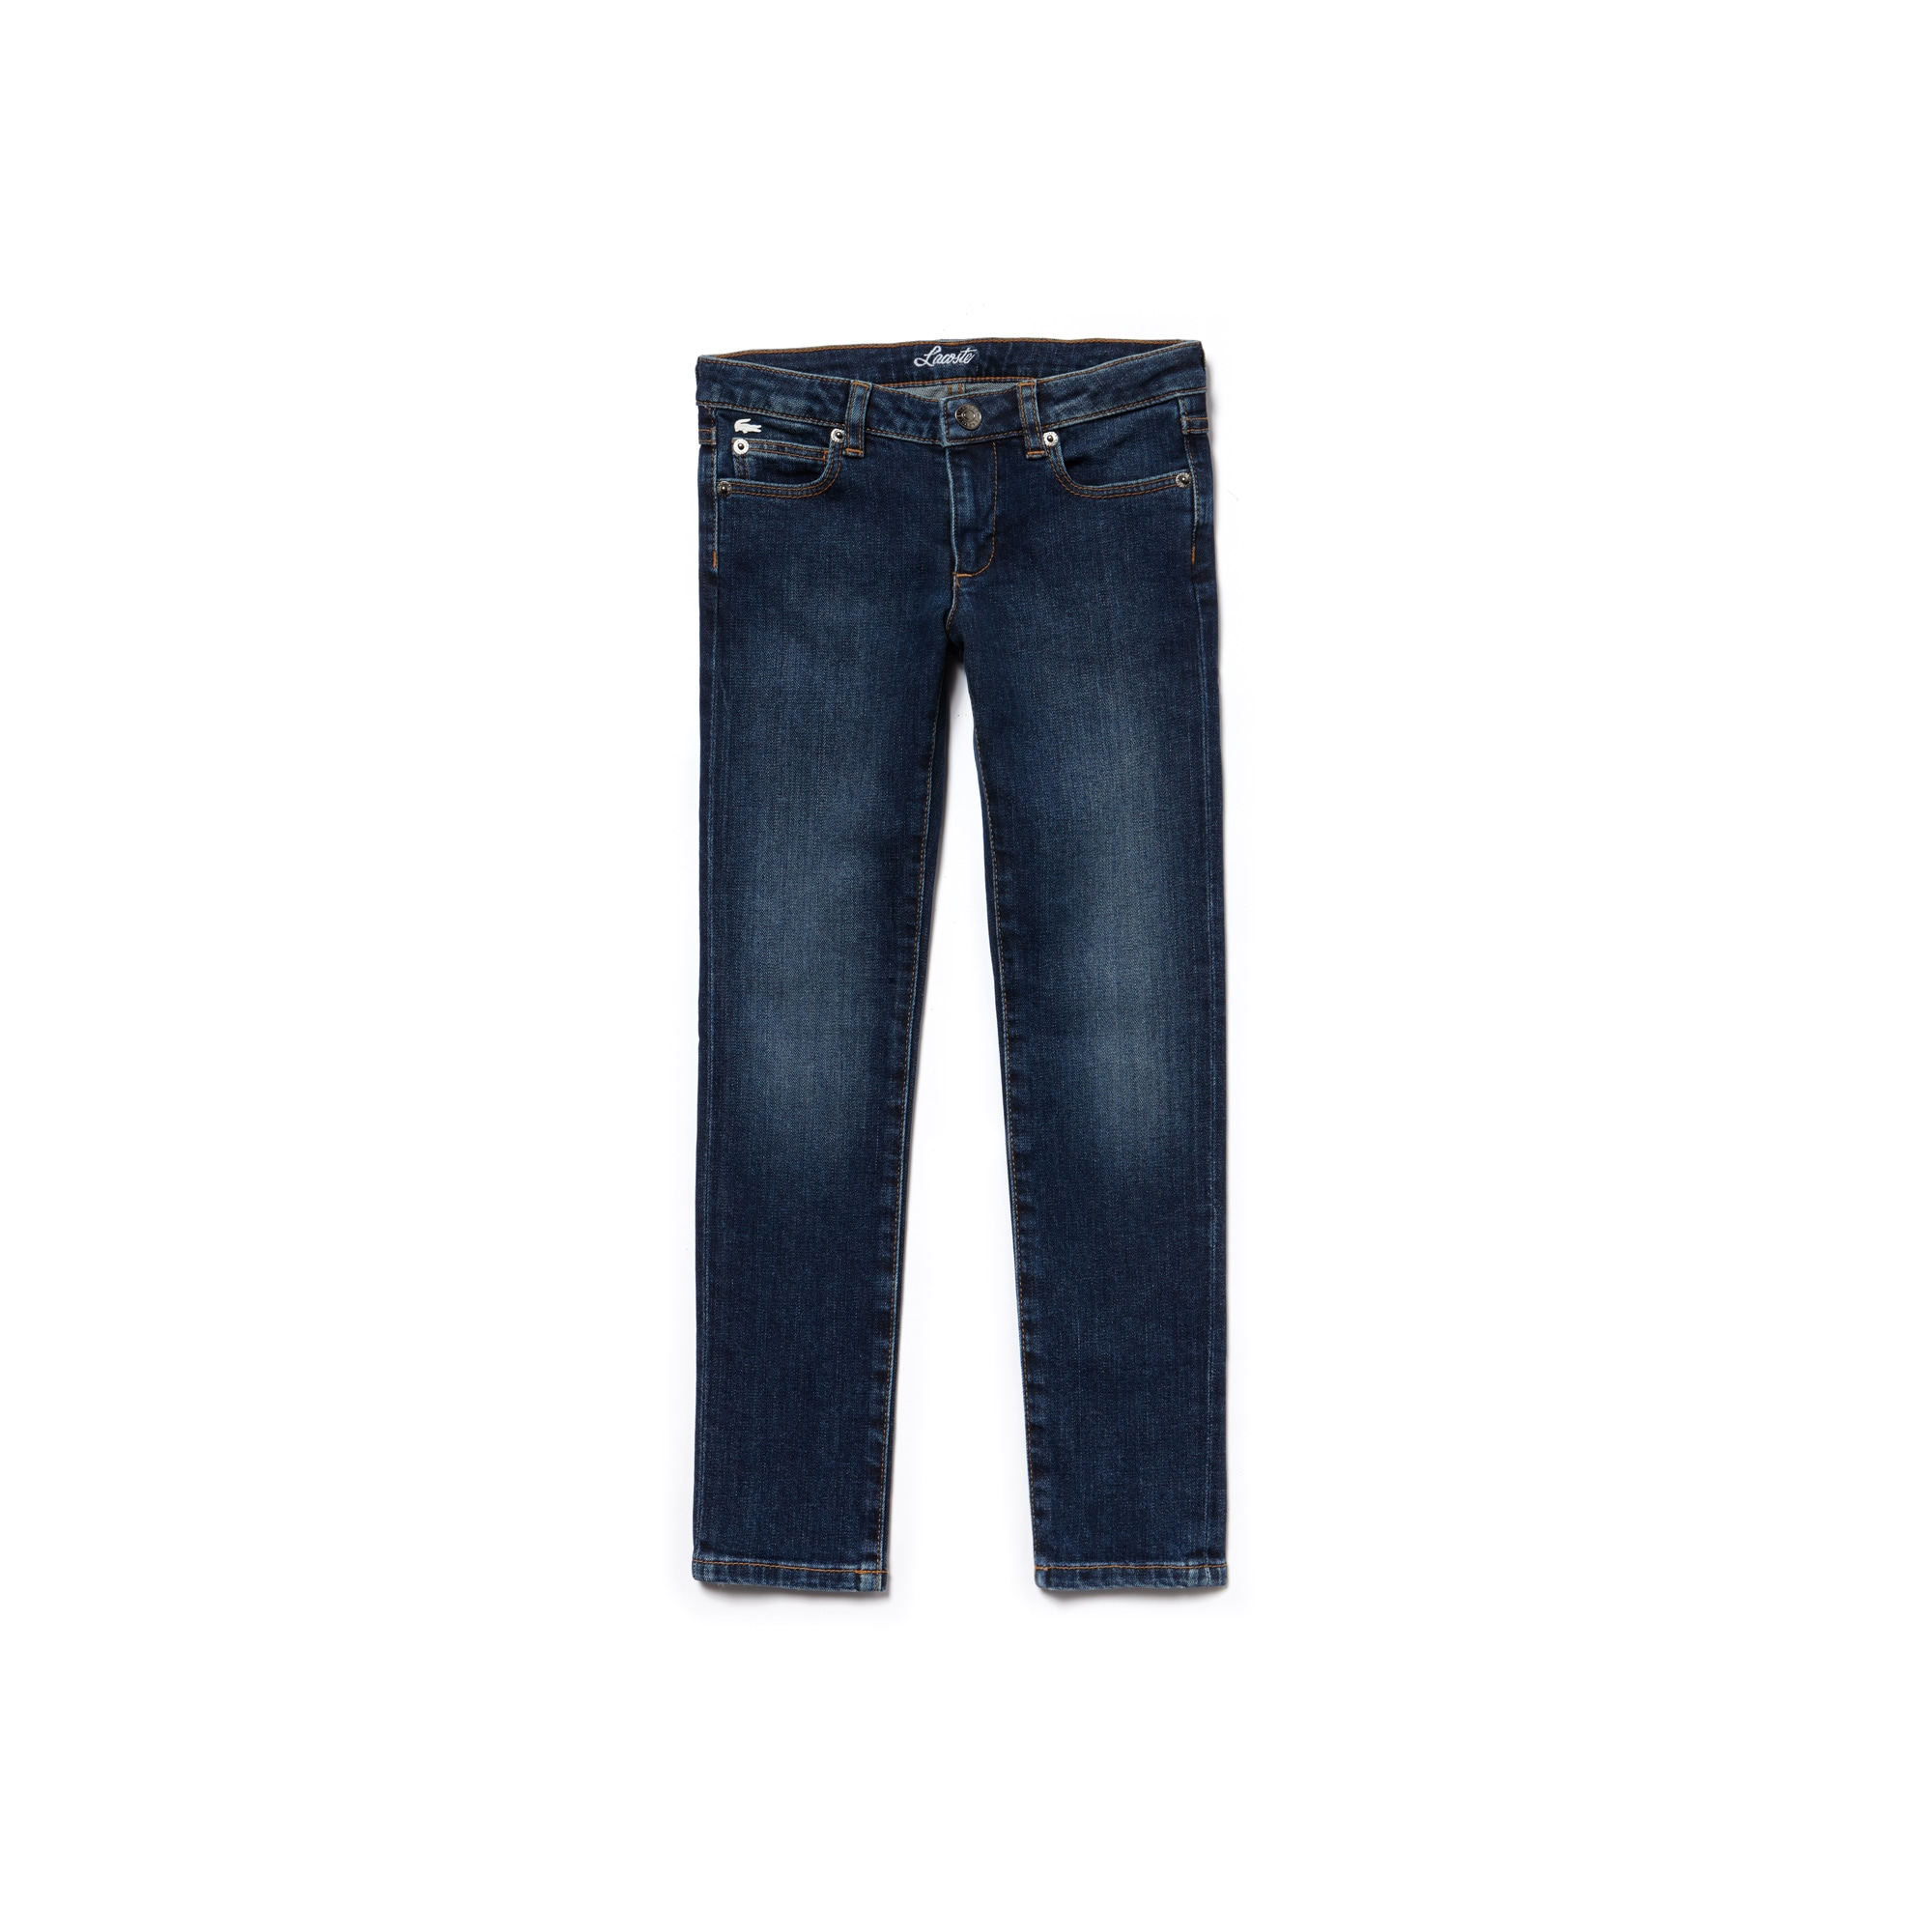 Girls' Blue Stretch Cotton Denim Jeans